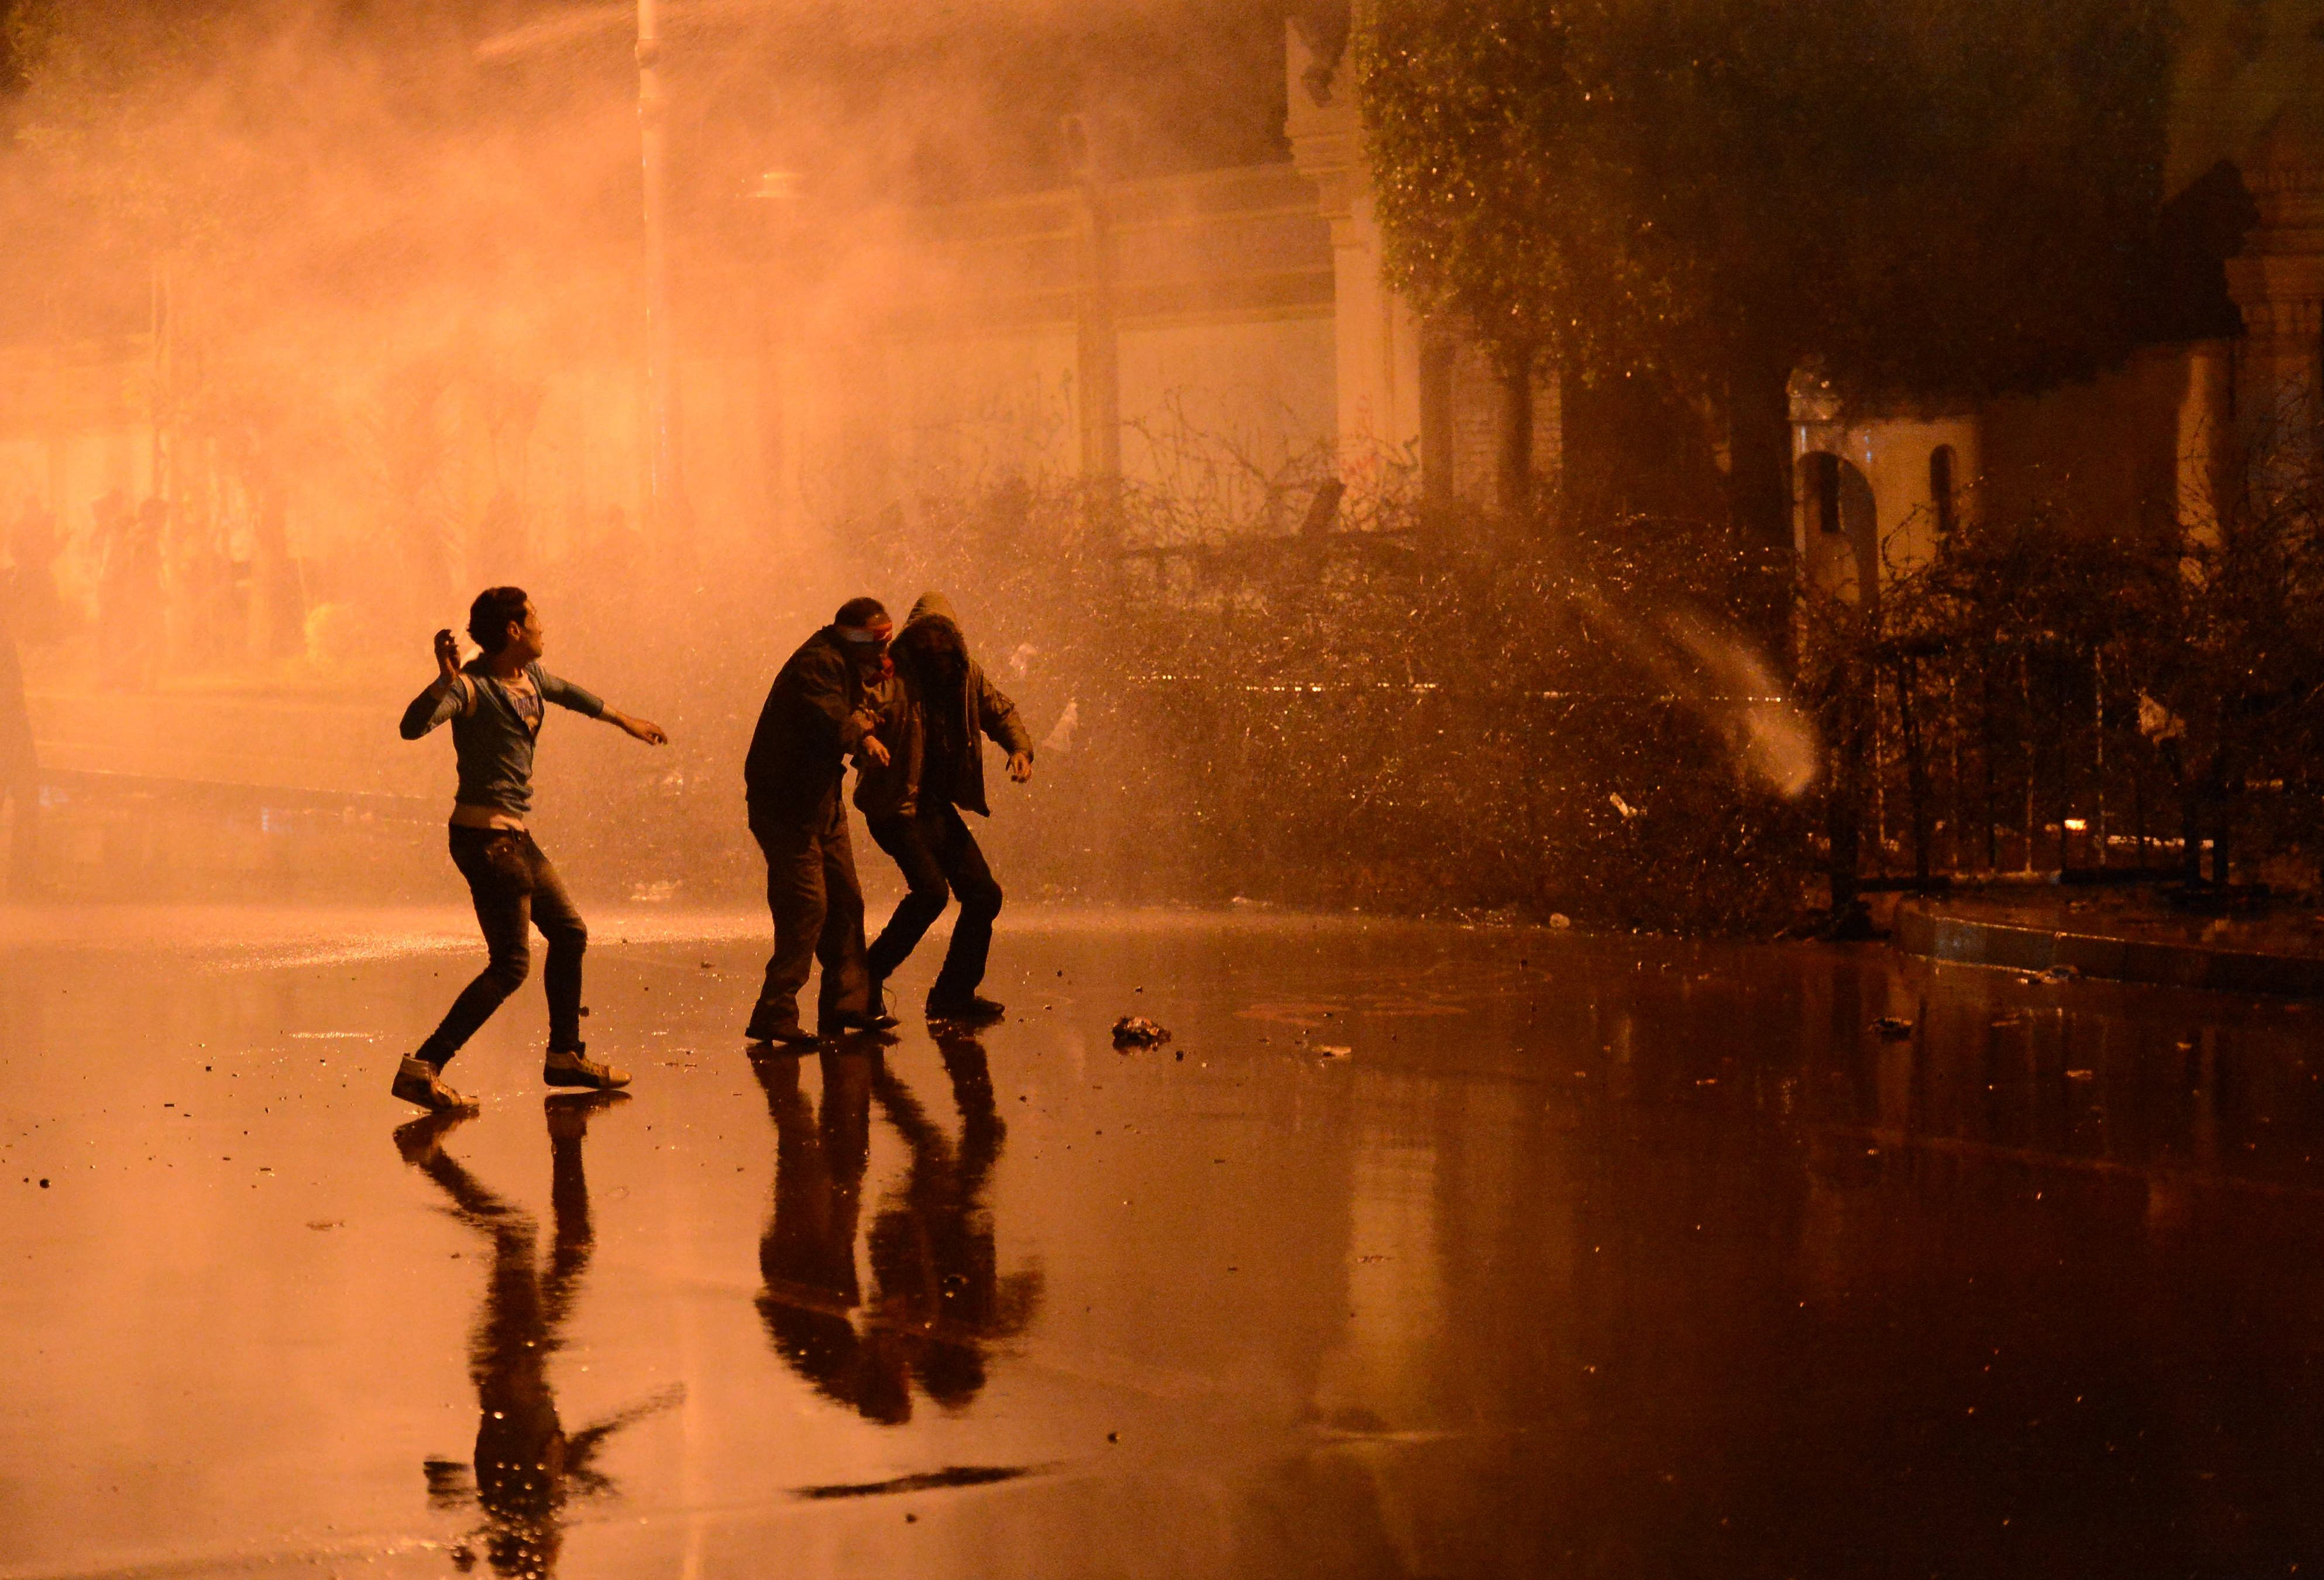 Egyptian police fired a water cannon at stone-throwing protesters outside the presidential palace on Monday as the opposition held rallies to mark the second anniversary of Hosni Mubarak's overthrow. (AFP)